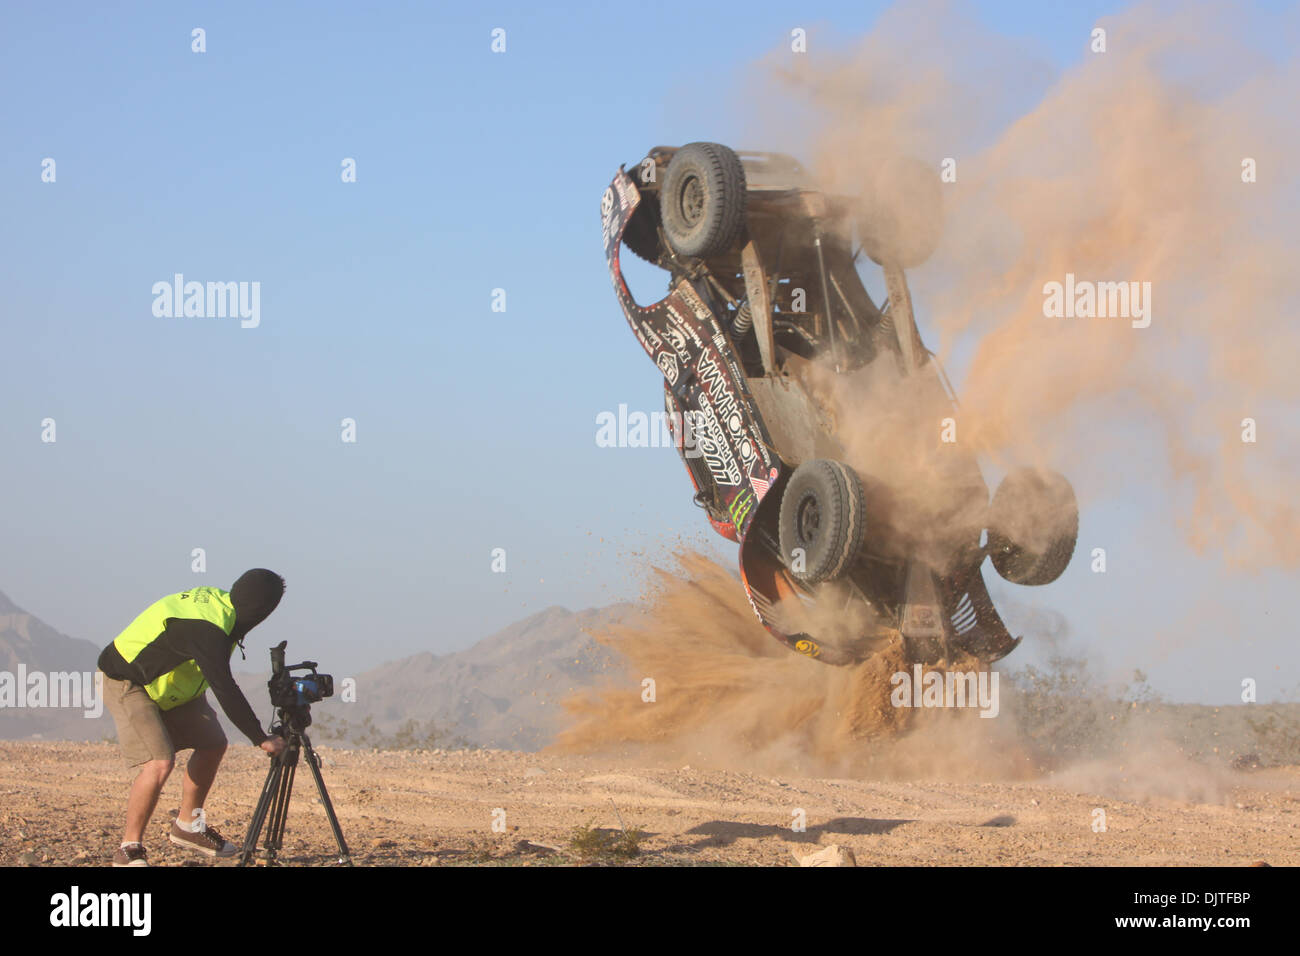 March 27, 2010 Videographer Scott Smith gets a front row seat to #1 Cameron Steele's spectacular end over end crash during qualifying at the SNORE, Mint 400 off-road race outside Las Vegas Nevada. (Credit Image: © Mike Ingalsbee/Southcreek Global/ZUMApress.com) - Stock Image